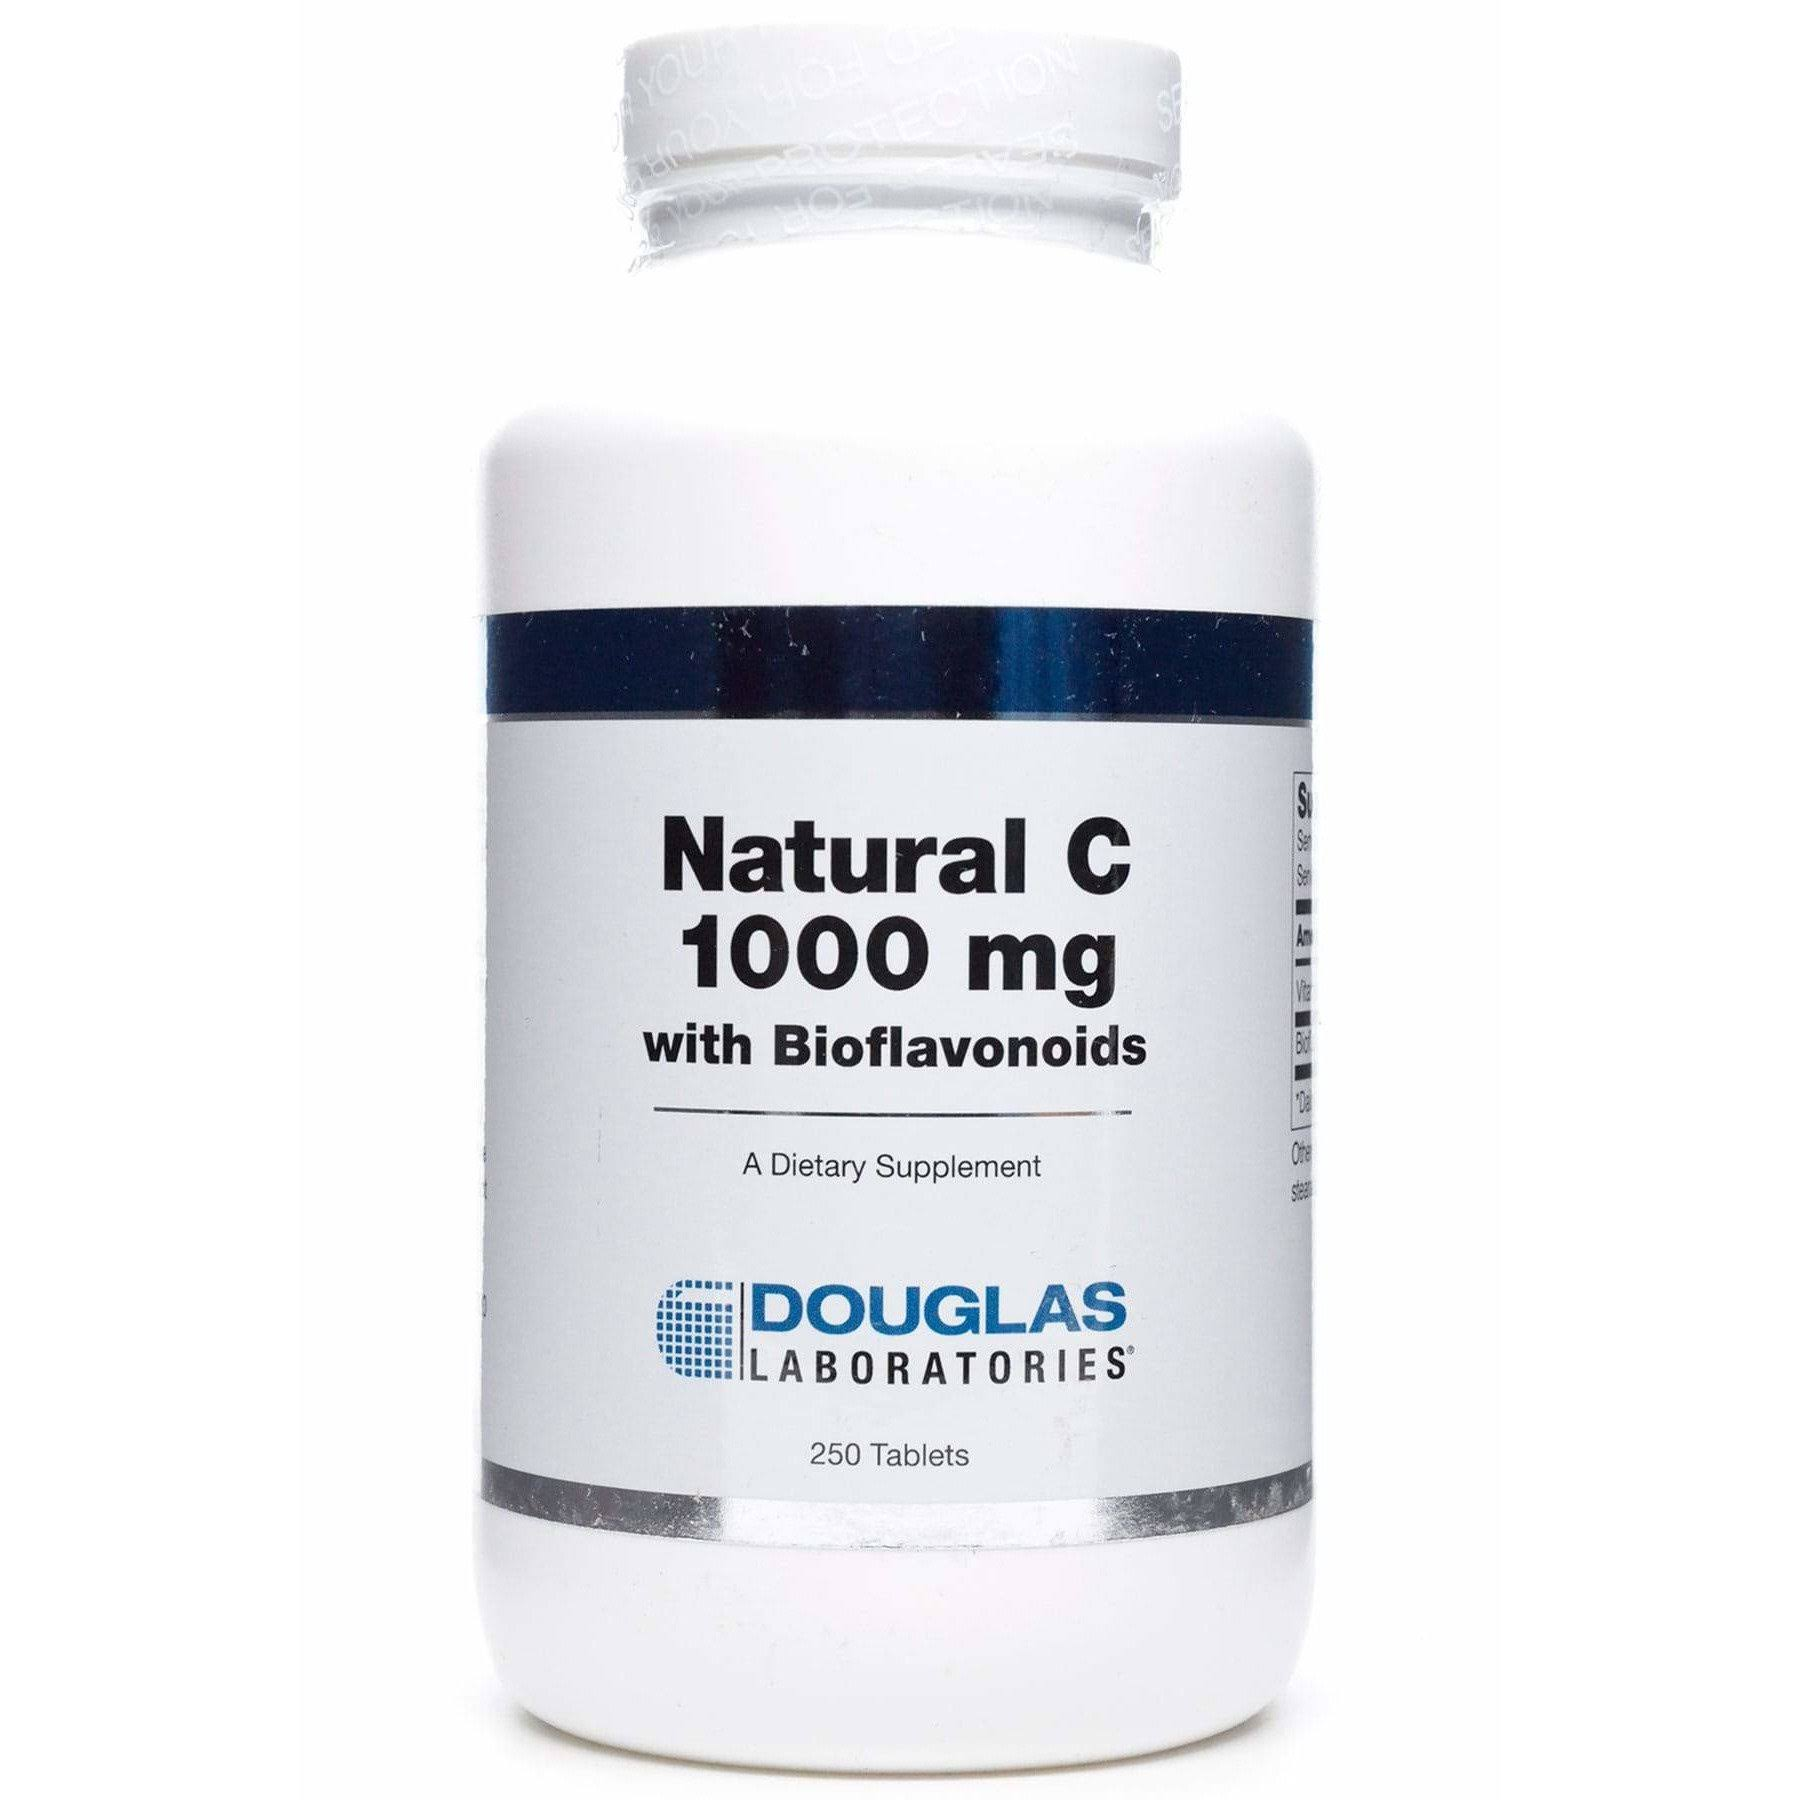 Douglas Laboratories Natural C Dietary Supplement - 250ct